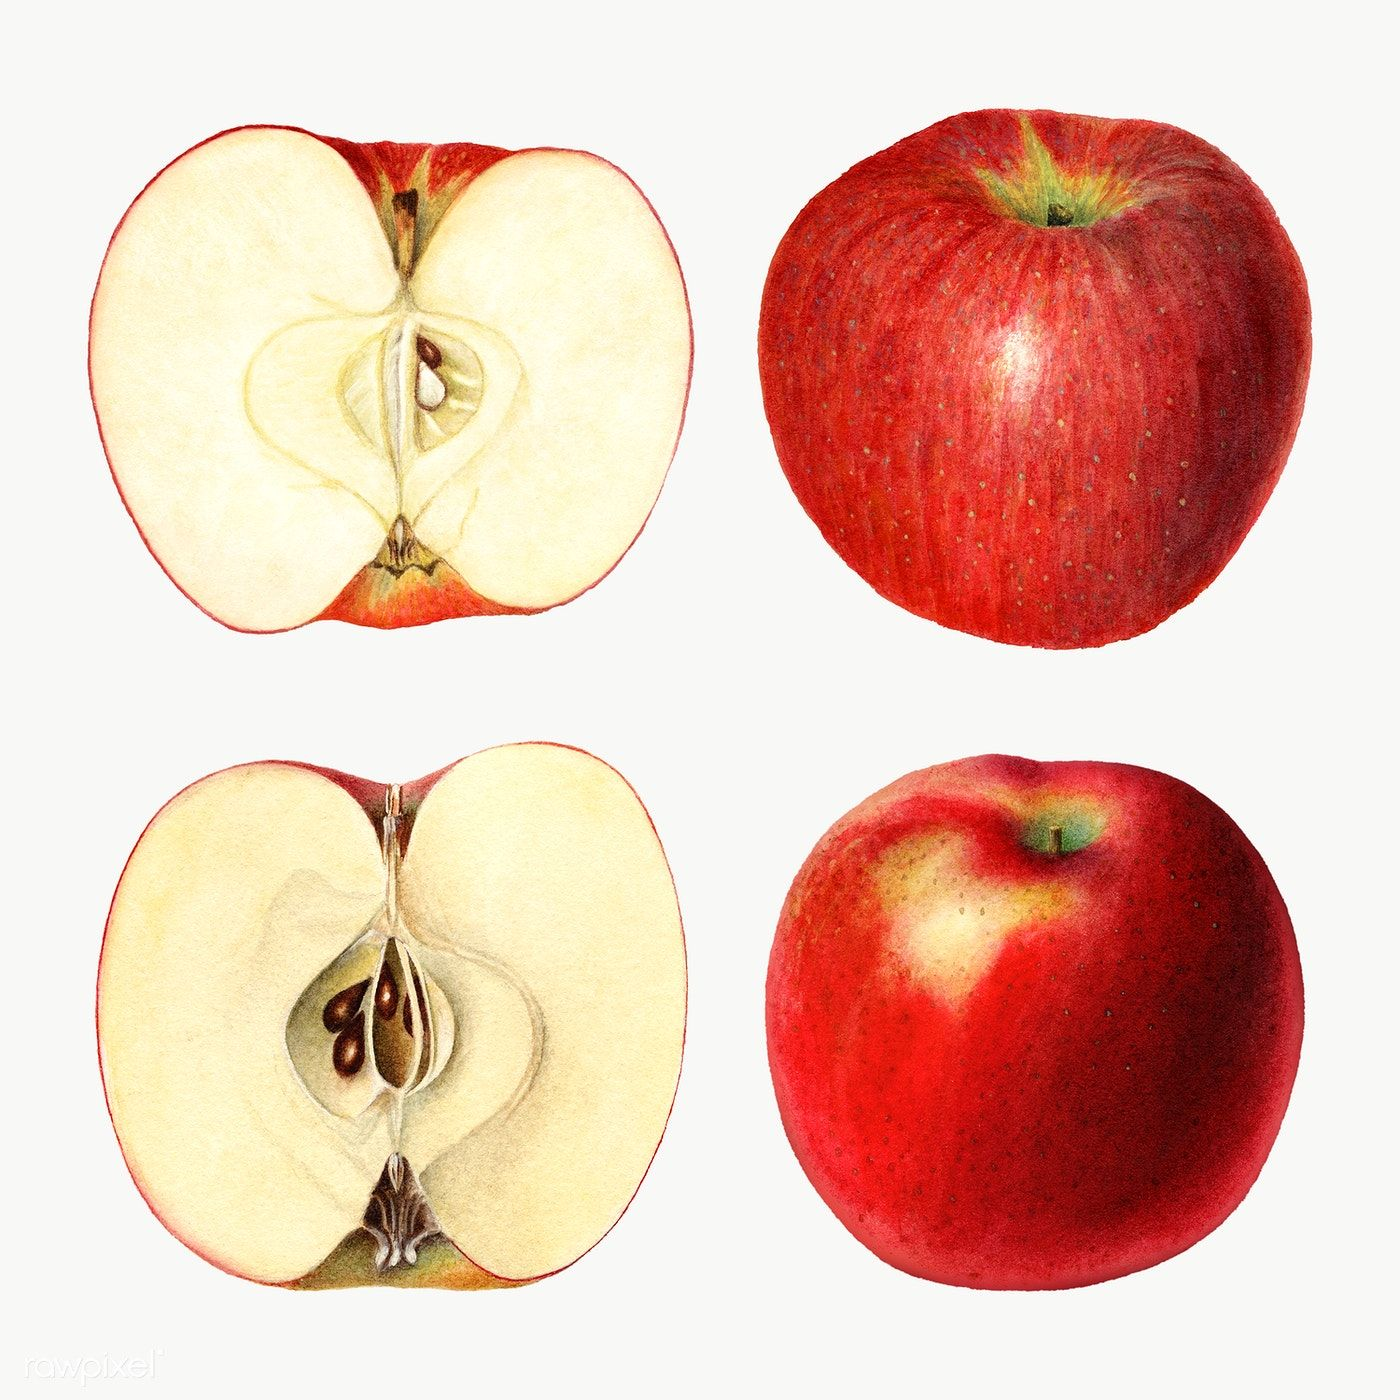 Download Premium Png Of Hand Drawn Sliced Red Apples Illustration 2296970 Apple Illustration Red Apple How To Draw Hands